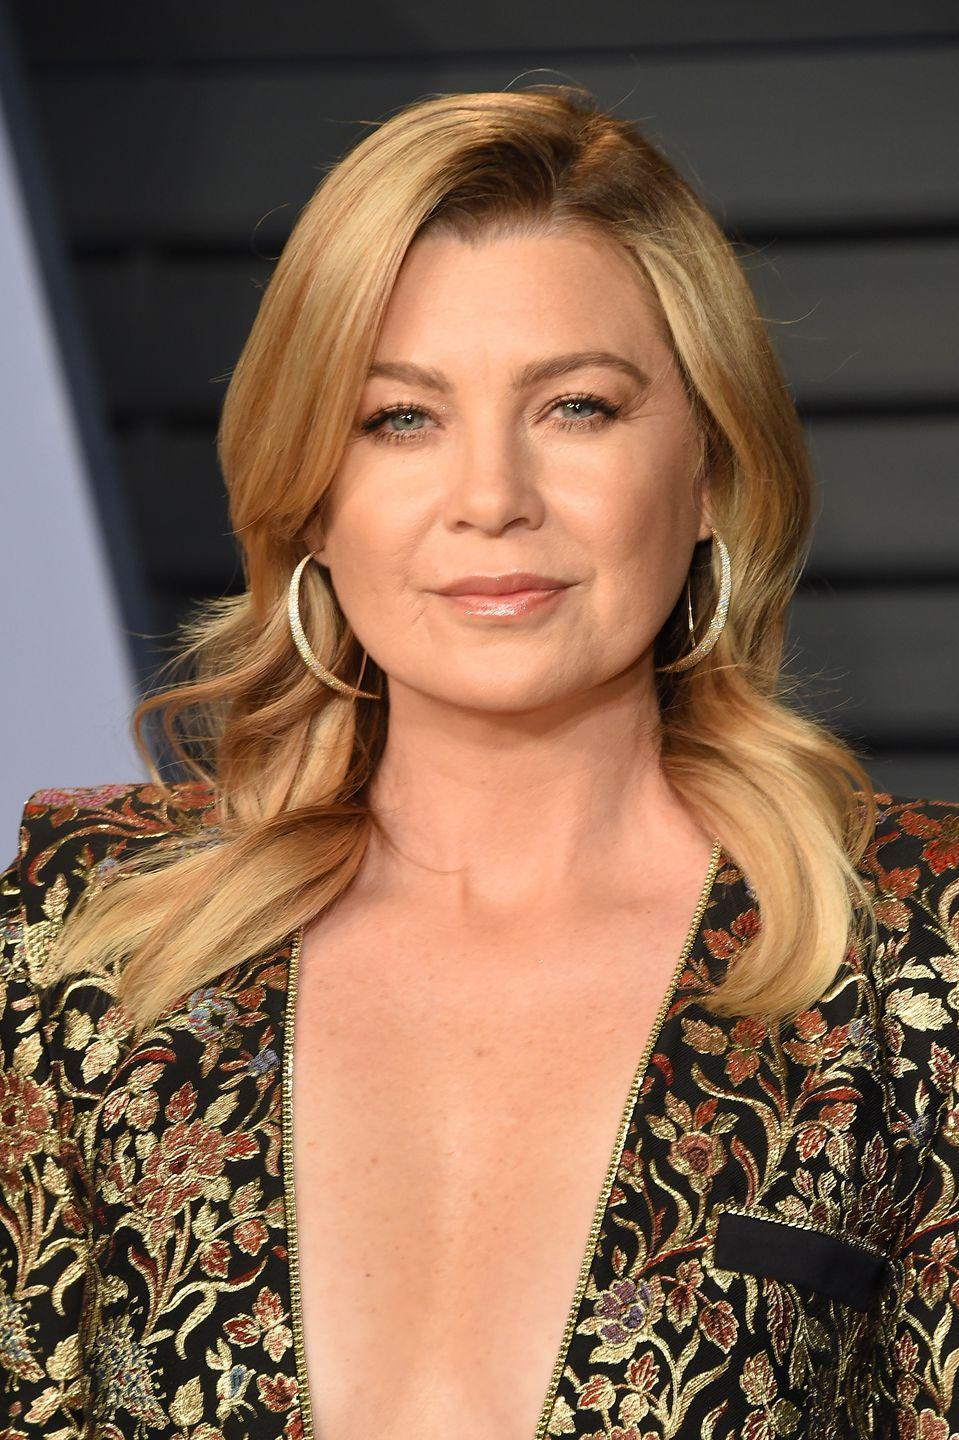 """<p>Before her career-making role in <em>Grey's Anatomy</em>, Ellen Pompeo was cast in <em>Eternal Sunshine of the Spotless Mind. </em>Pompeo filmed <a href=""""https://www.youtube.com/watch?v=IKc2tmyxNZk"""" rel=""""nofollow noopener"""" target=""""_blank"""" data-ylk=""""slk:numerous scenes with Jim Carrey"""" class=""""link rapid-noclick-resp"""">numerous scenes with Jim Carrey</a>, as his ex-girlfriend, but the <a href=""""https://www.indiewire.com/2018/01/eternal-sunshine-of-the-spotless-mind-deleted-scenes-change-movie-jim-carrey-1201912546/"""" rel=""""nofollow noopener"""" target=""""_blank"""" data-ylk=""""slk:director felt it was best to remove the character"""" class=""""link rapid-noclick-resp"""">director felt it was best to remove the character</a> entirely from the film. </p>"""